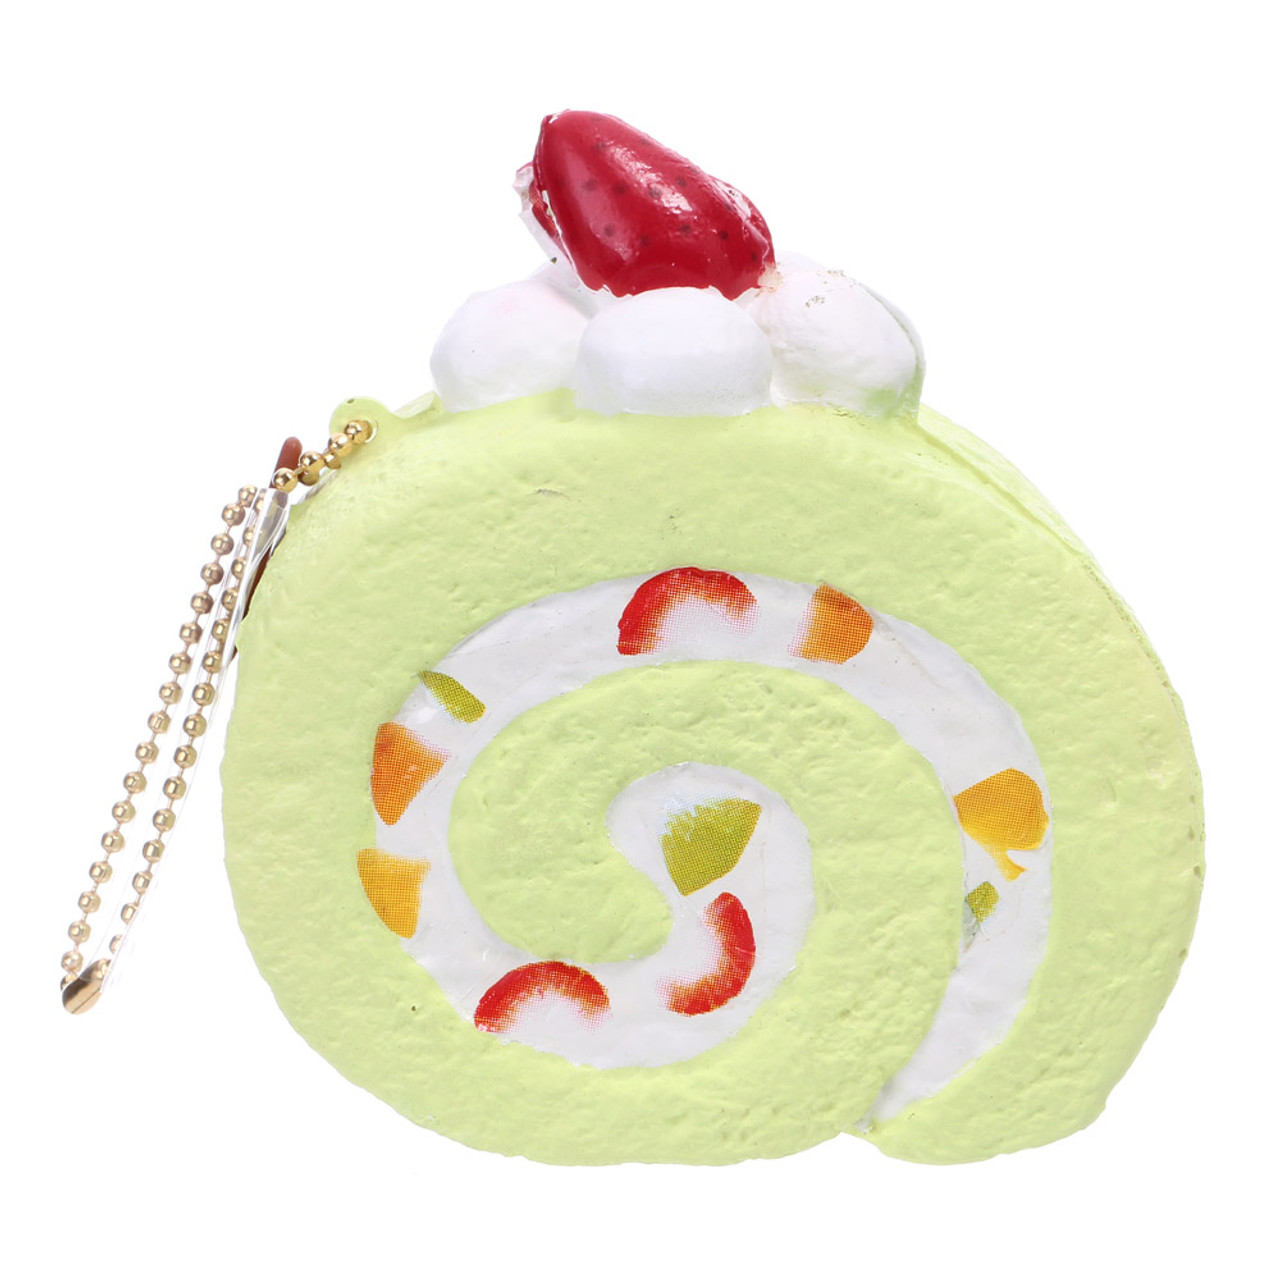 Café De N Scented Matcha Green Tea Roll Cake Squishy Toys Charms ( Back View )